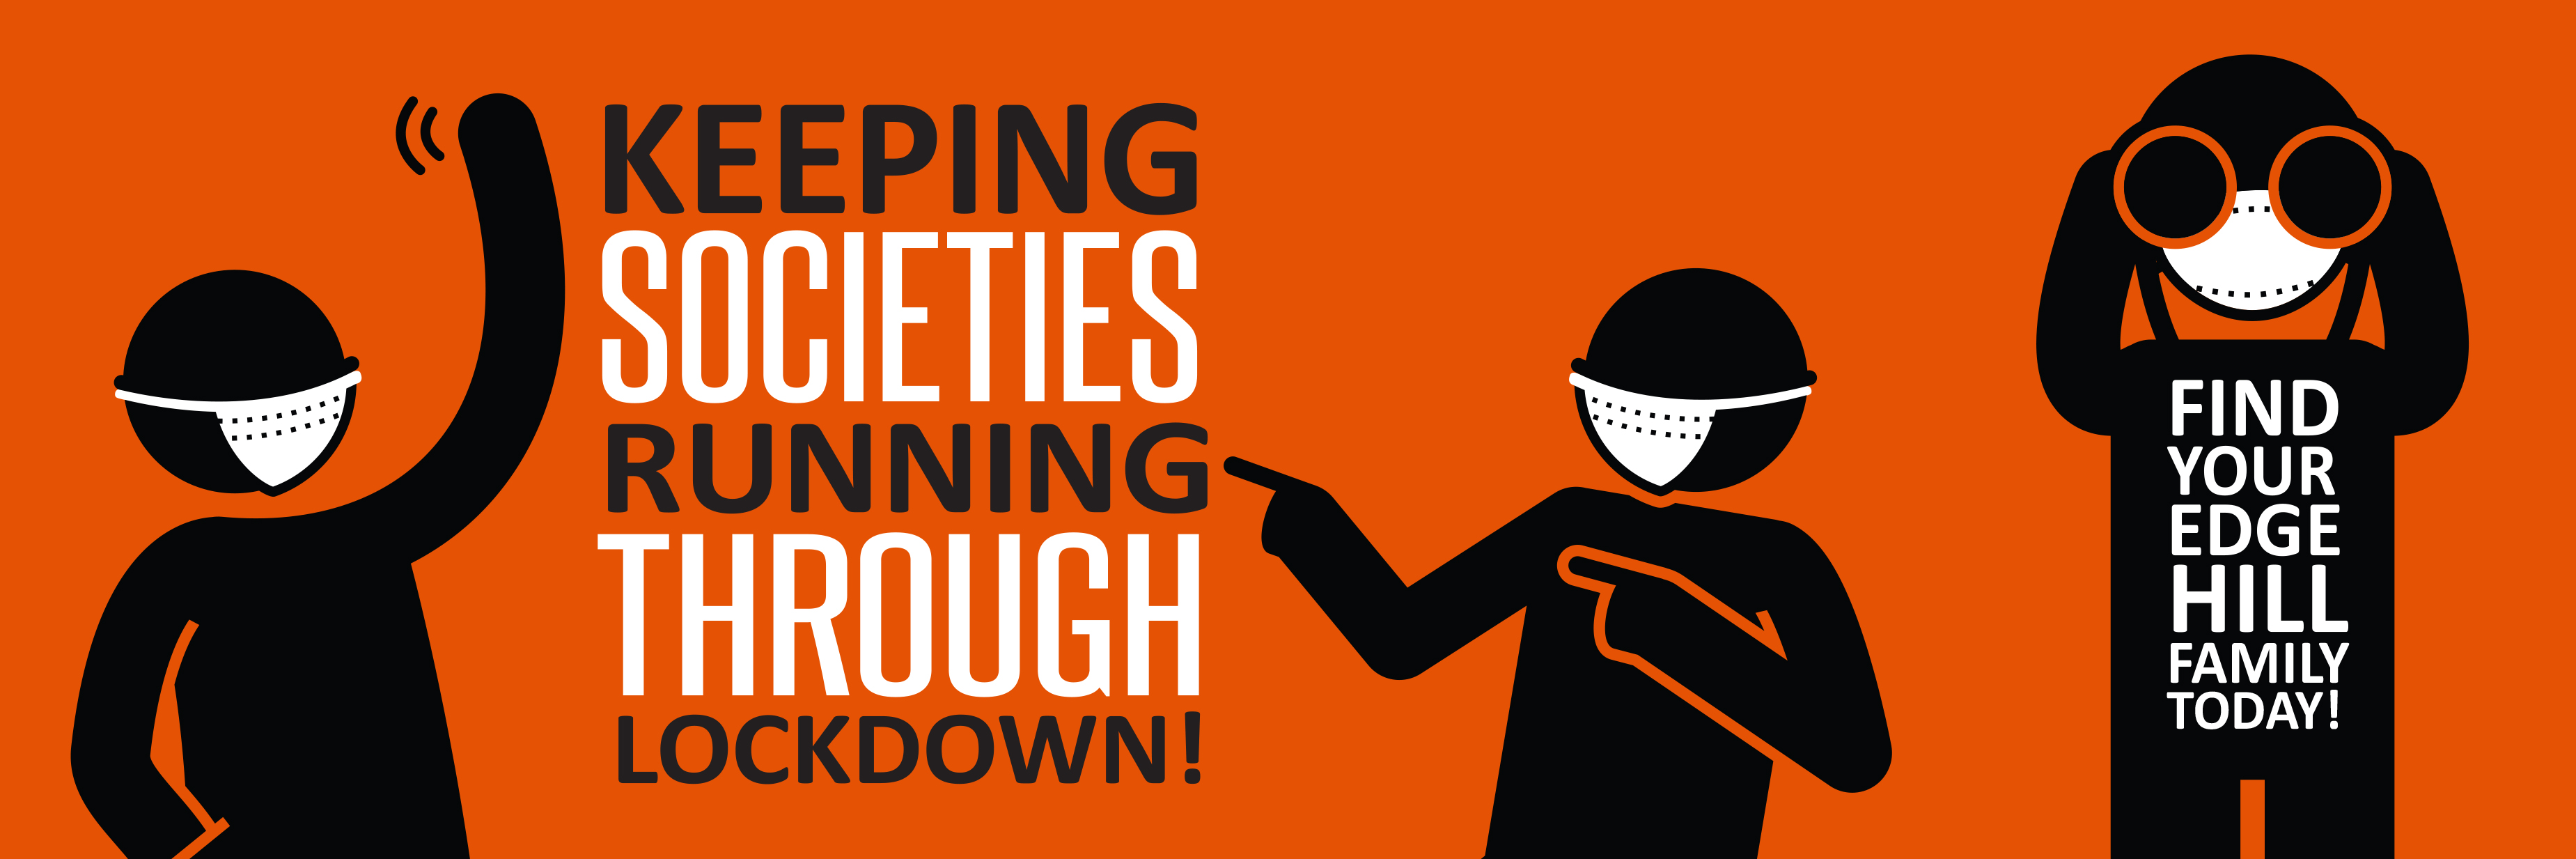 Web Banner Graphic: Keeping Societies Through Lockdown. Find your Edge Hill family today!